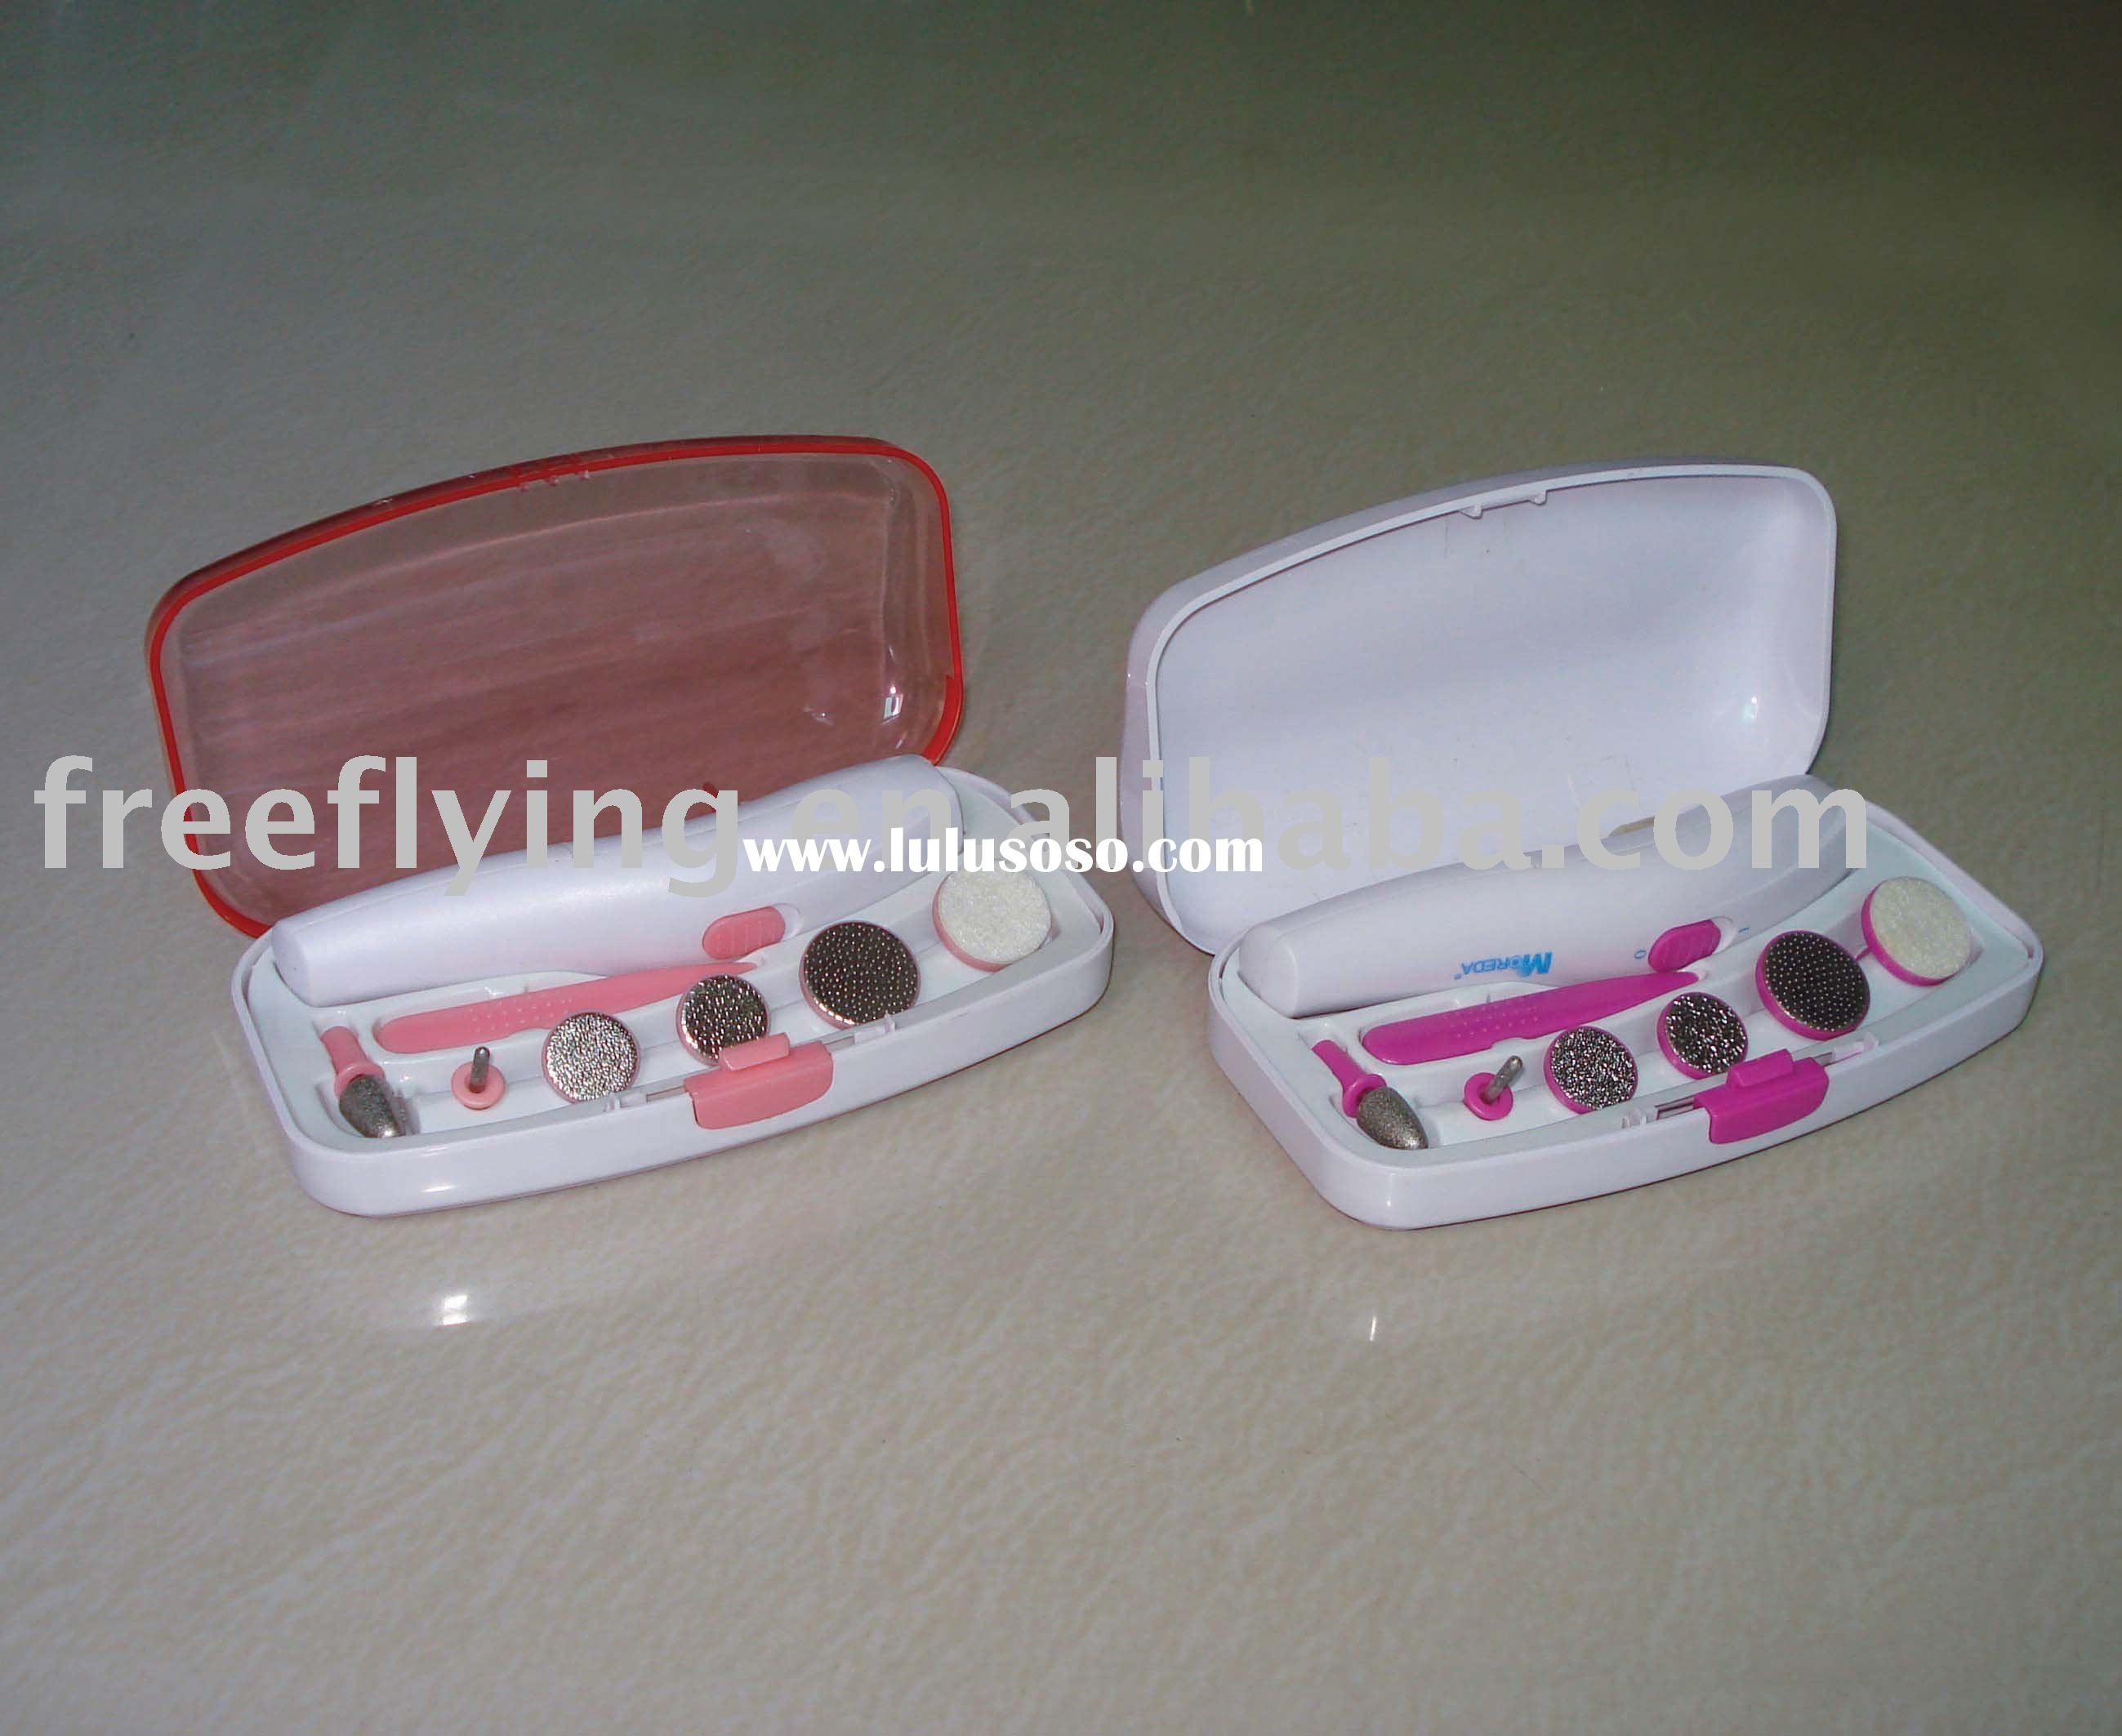 Professional manicure and pedicure set, nail polisher and nail dryer, nail care kit